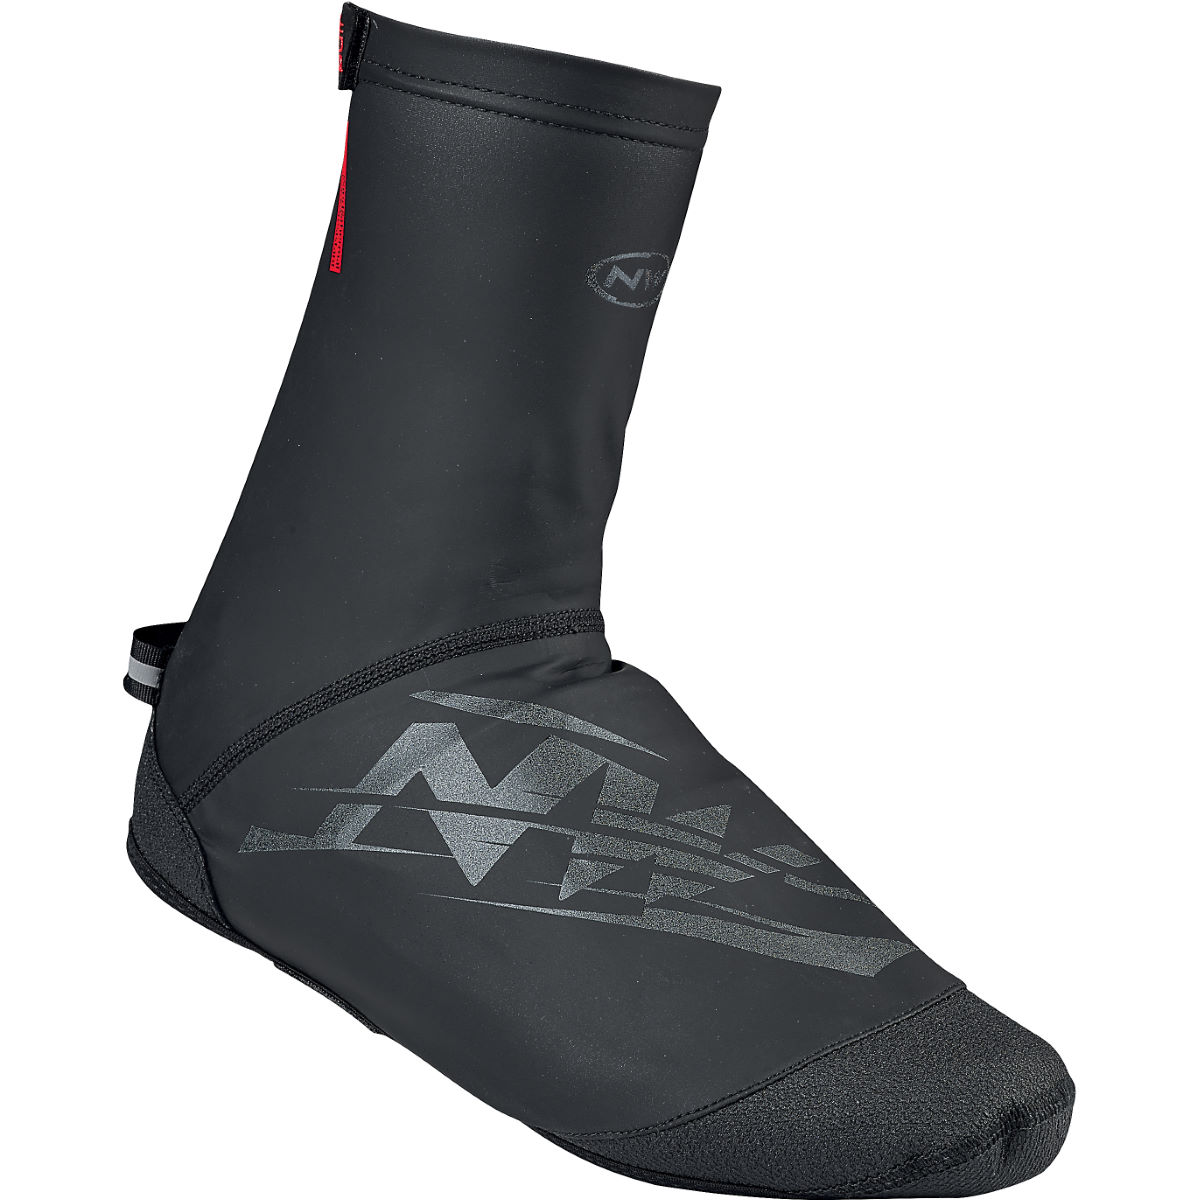 Couvre-chaussures VTT Northwave Acqua - S Noir Couvre-chaussures